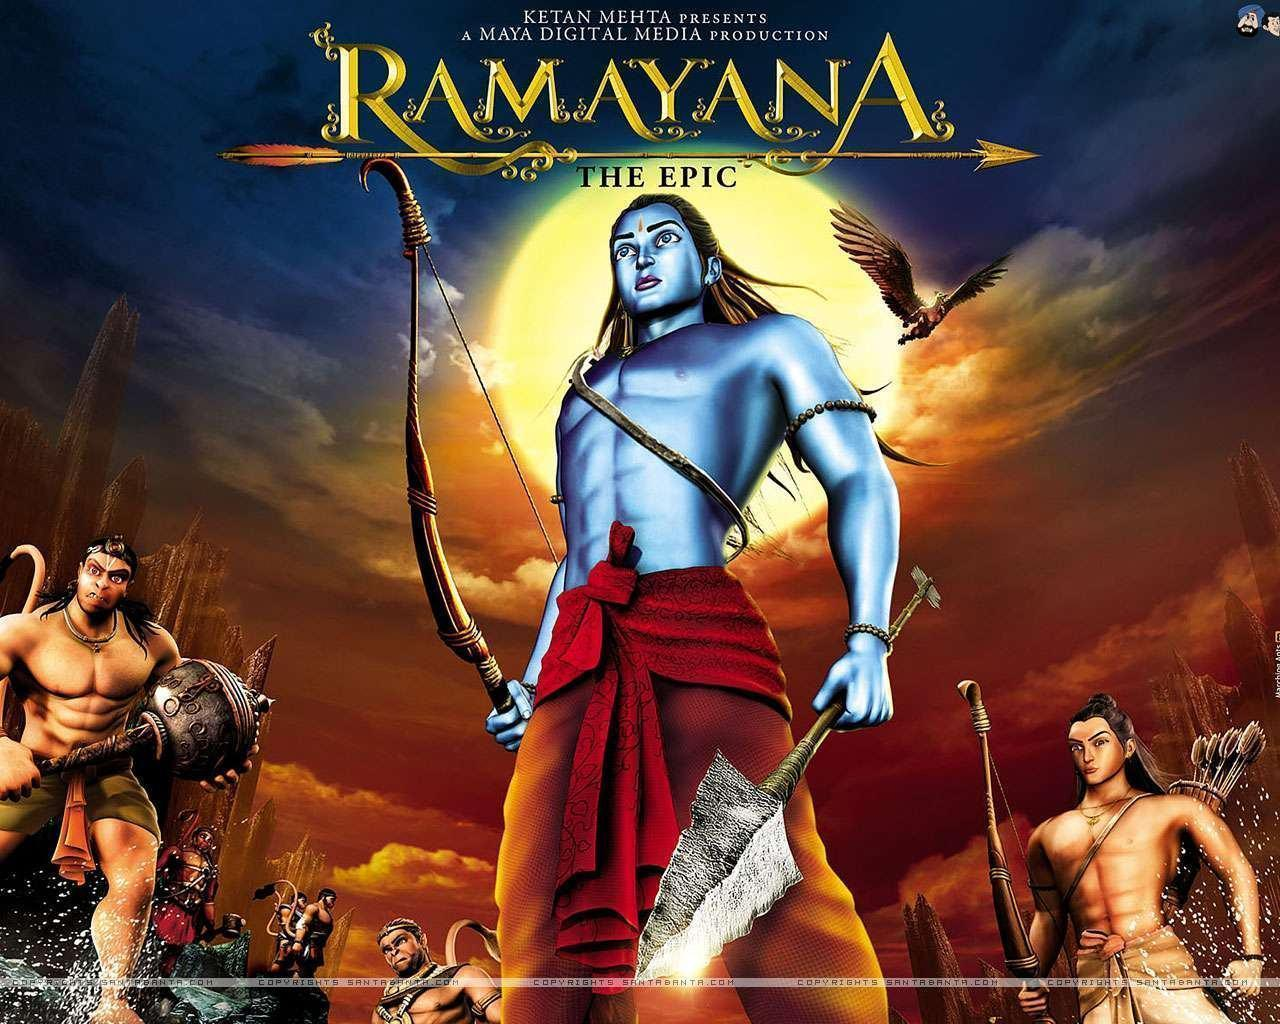 Ramayan zee tv promo hd wallpapers photos pictures - Ramayana Hd God Images Wallpapers Backgrounds Ramayana Allgod